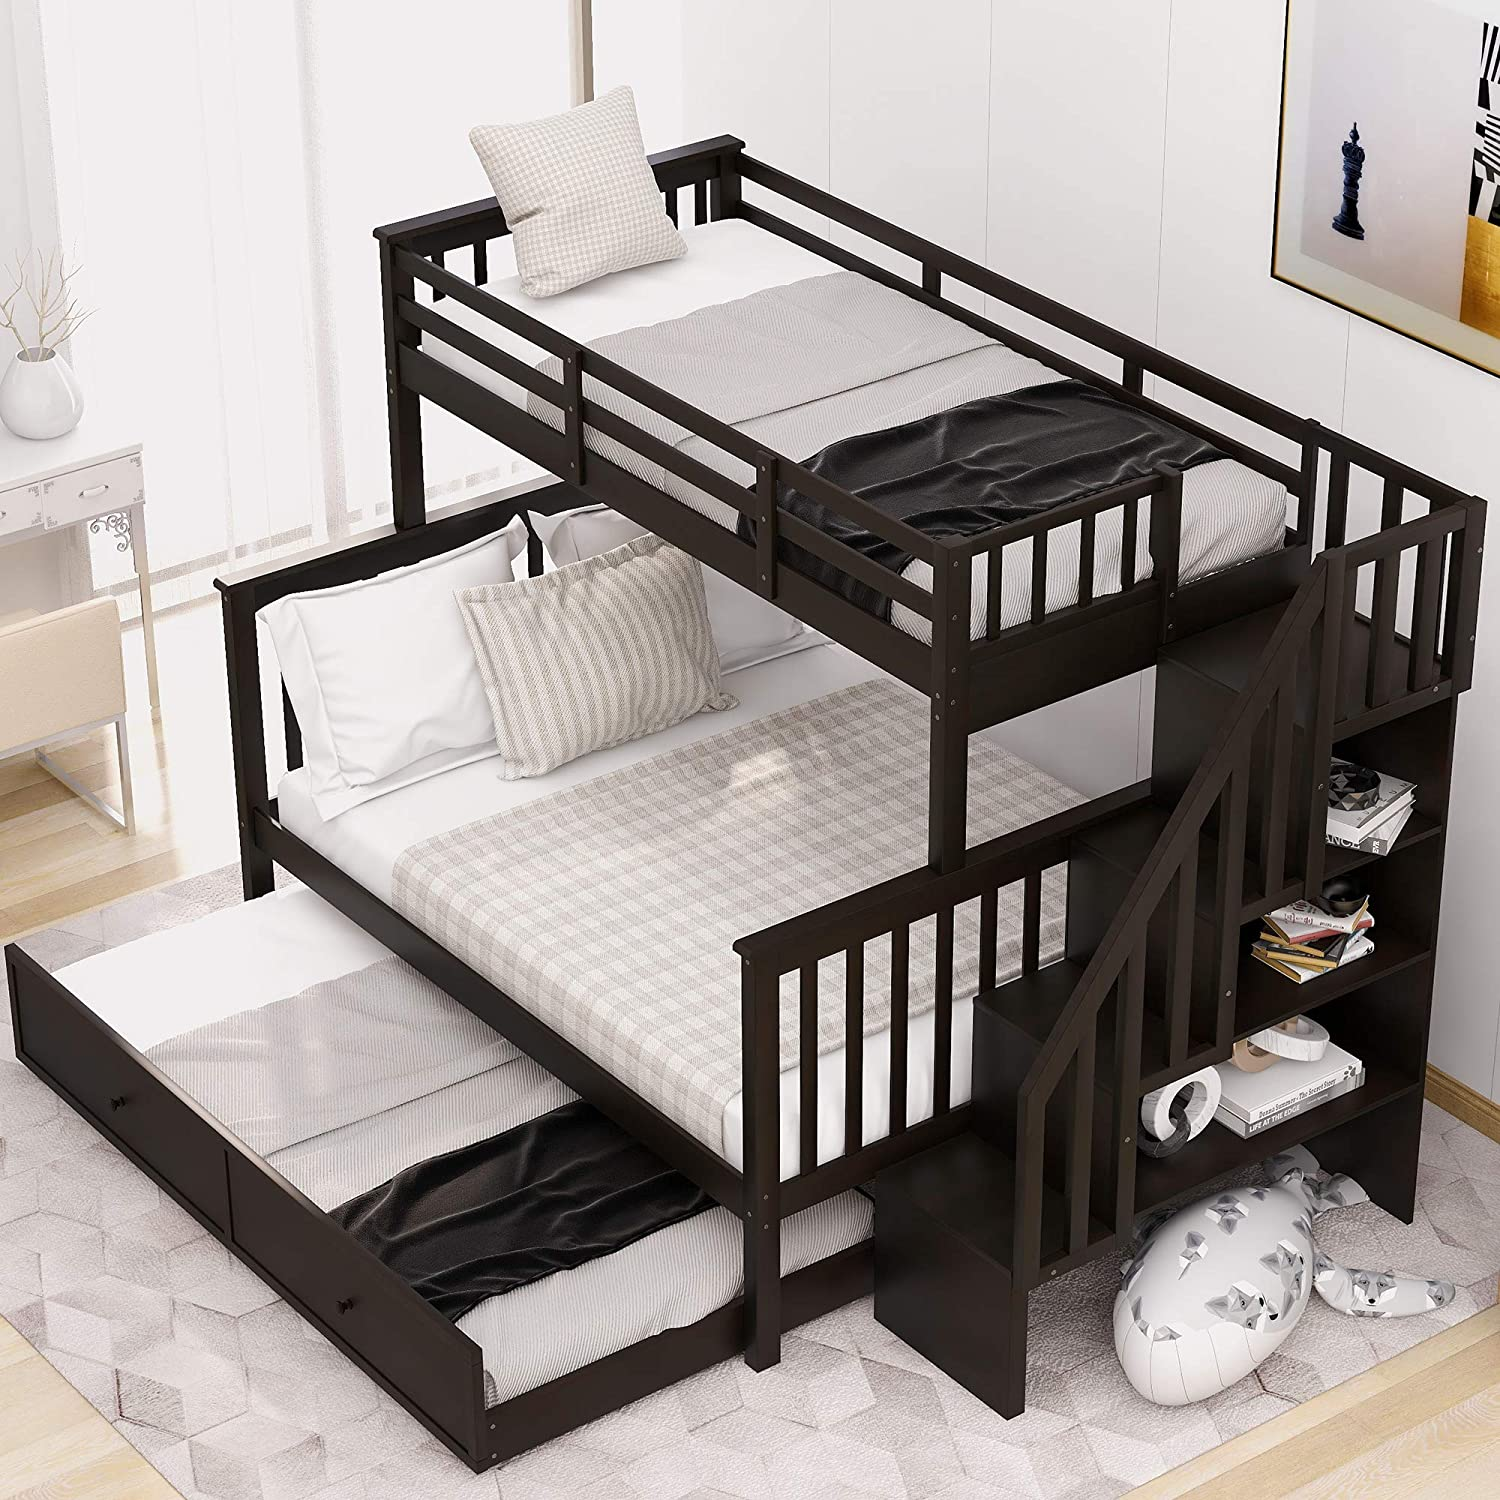 Buy Lumisol Twin Over Full Bunk Beds With Storage And Guard Rail Wood Trundle Bunk Bed For Kids Adult Online In Turkey B08crbvr4h